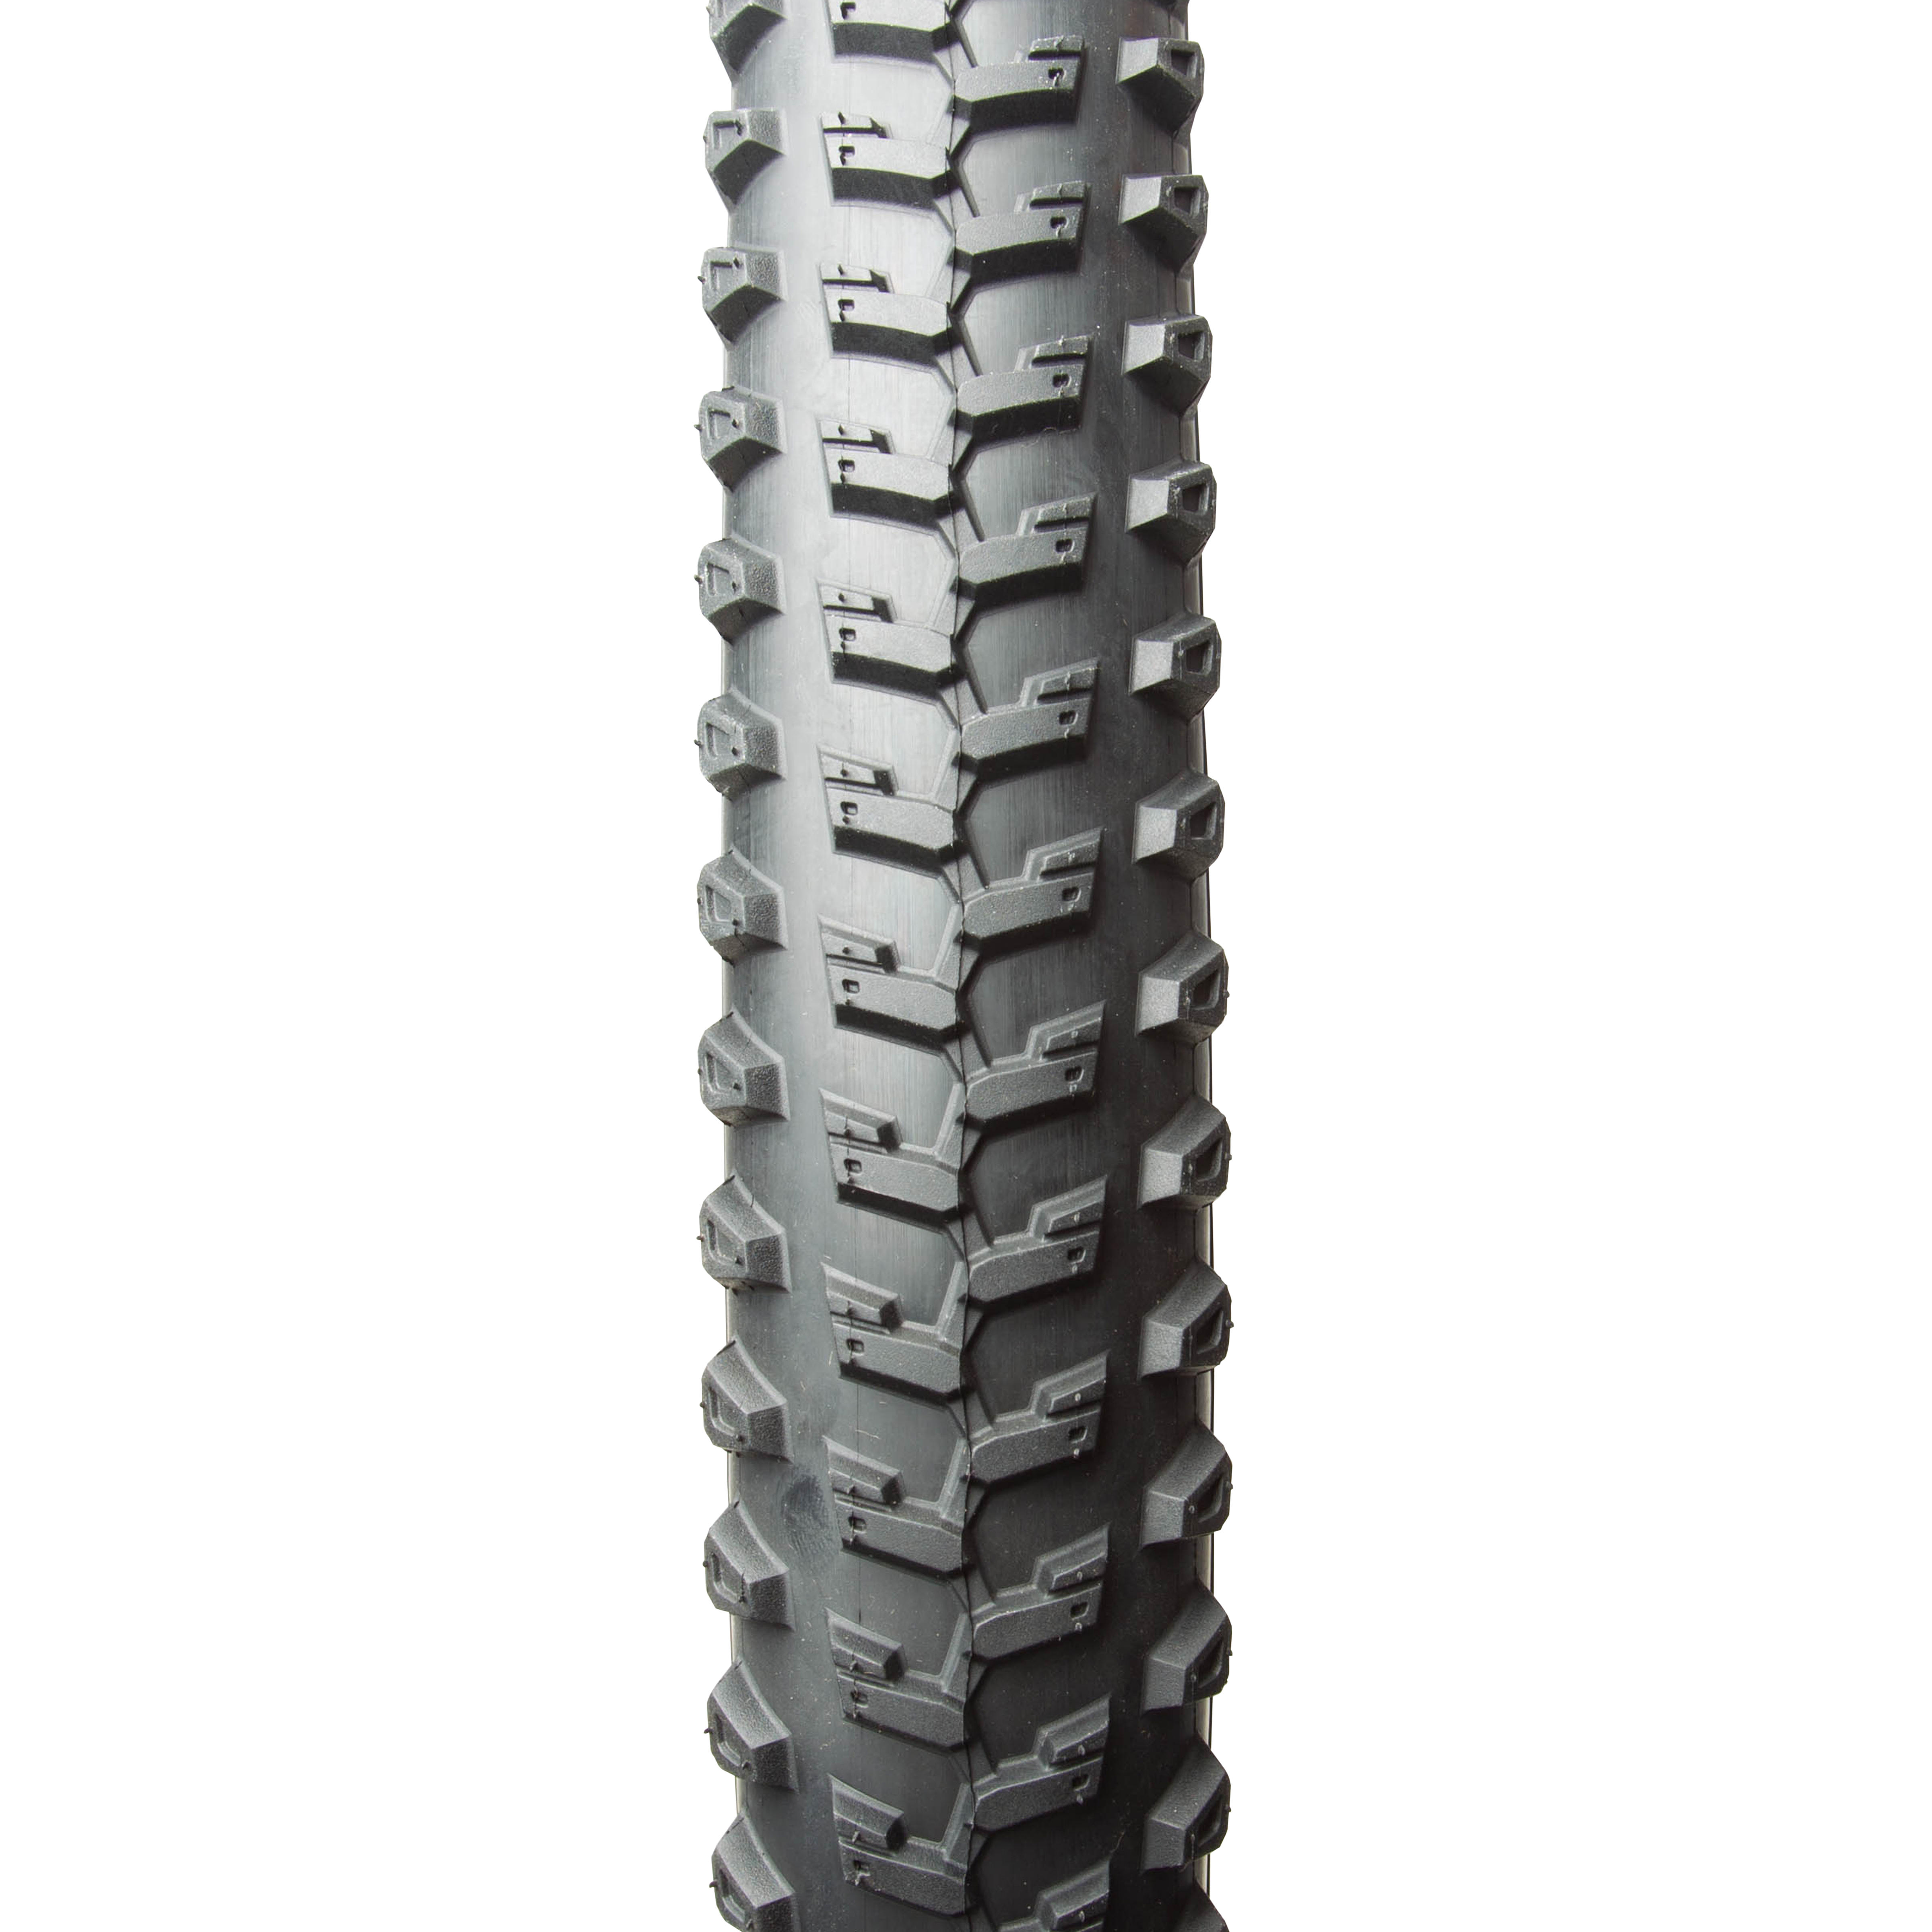 All Terrain 9 Speed 29x2.10 Stiff Bead Mountain Bike Tyre / ETRTO 54-622